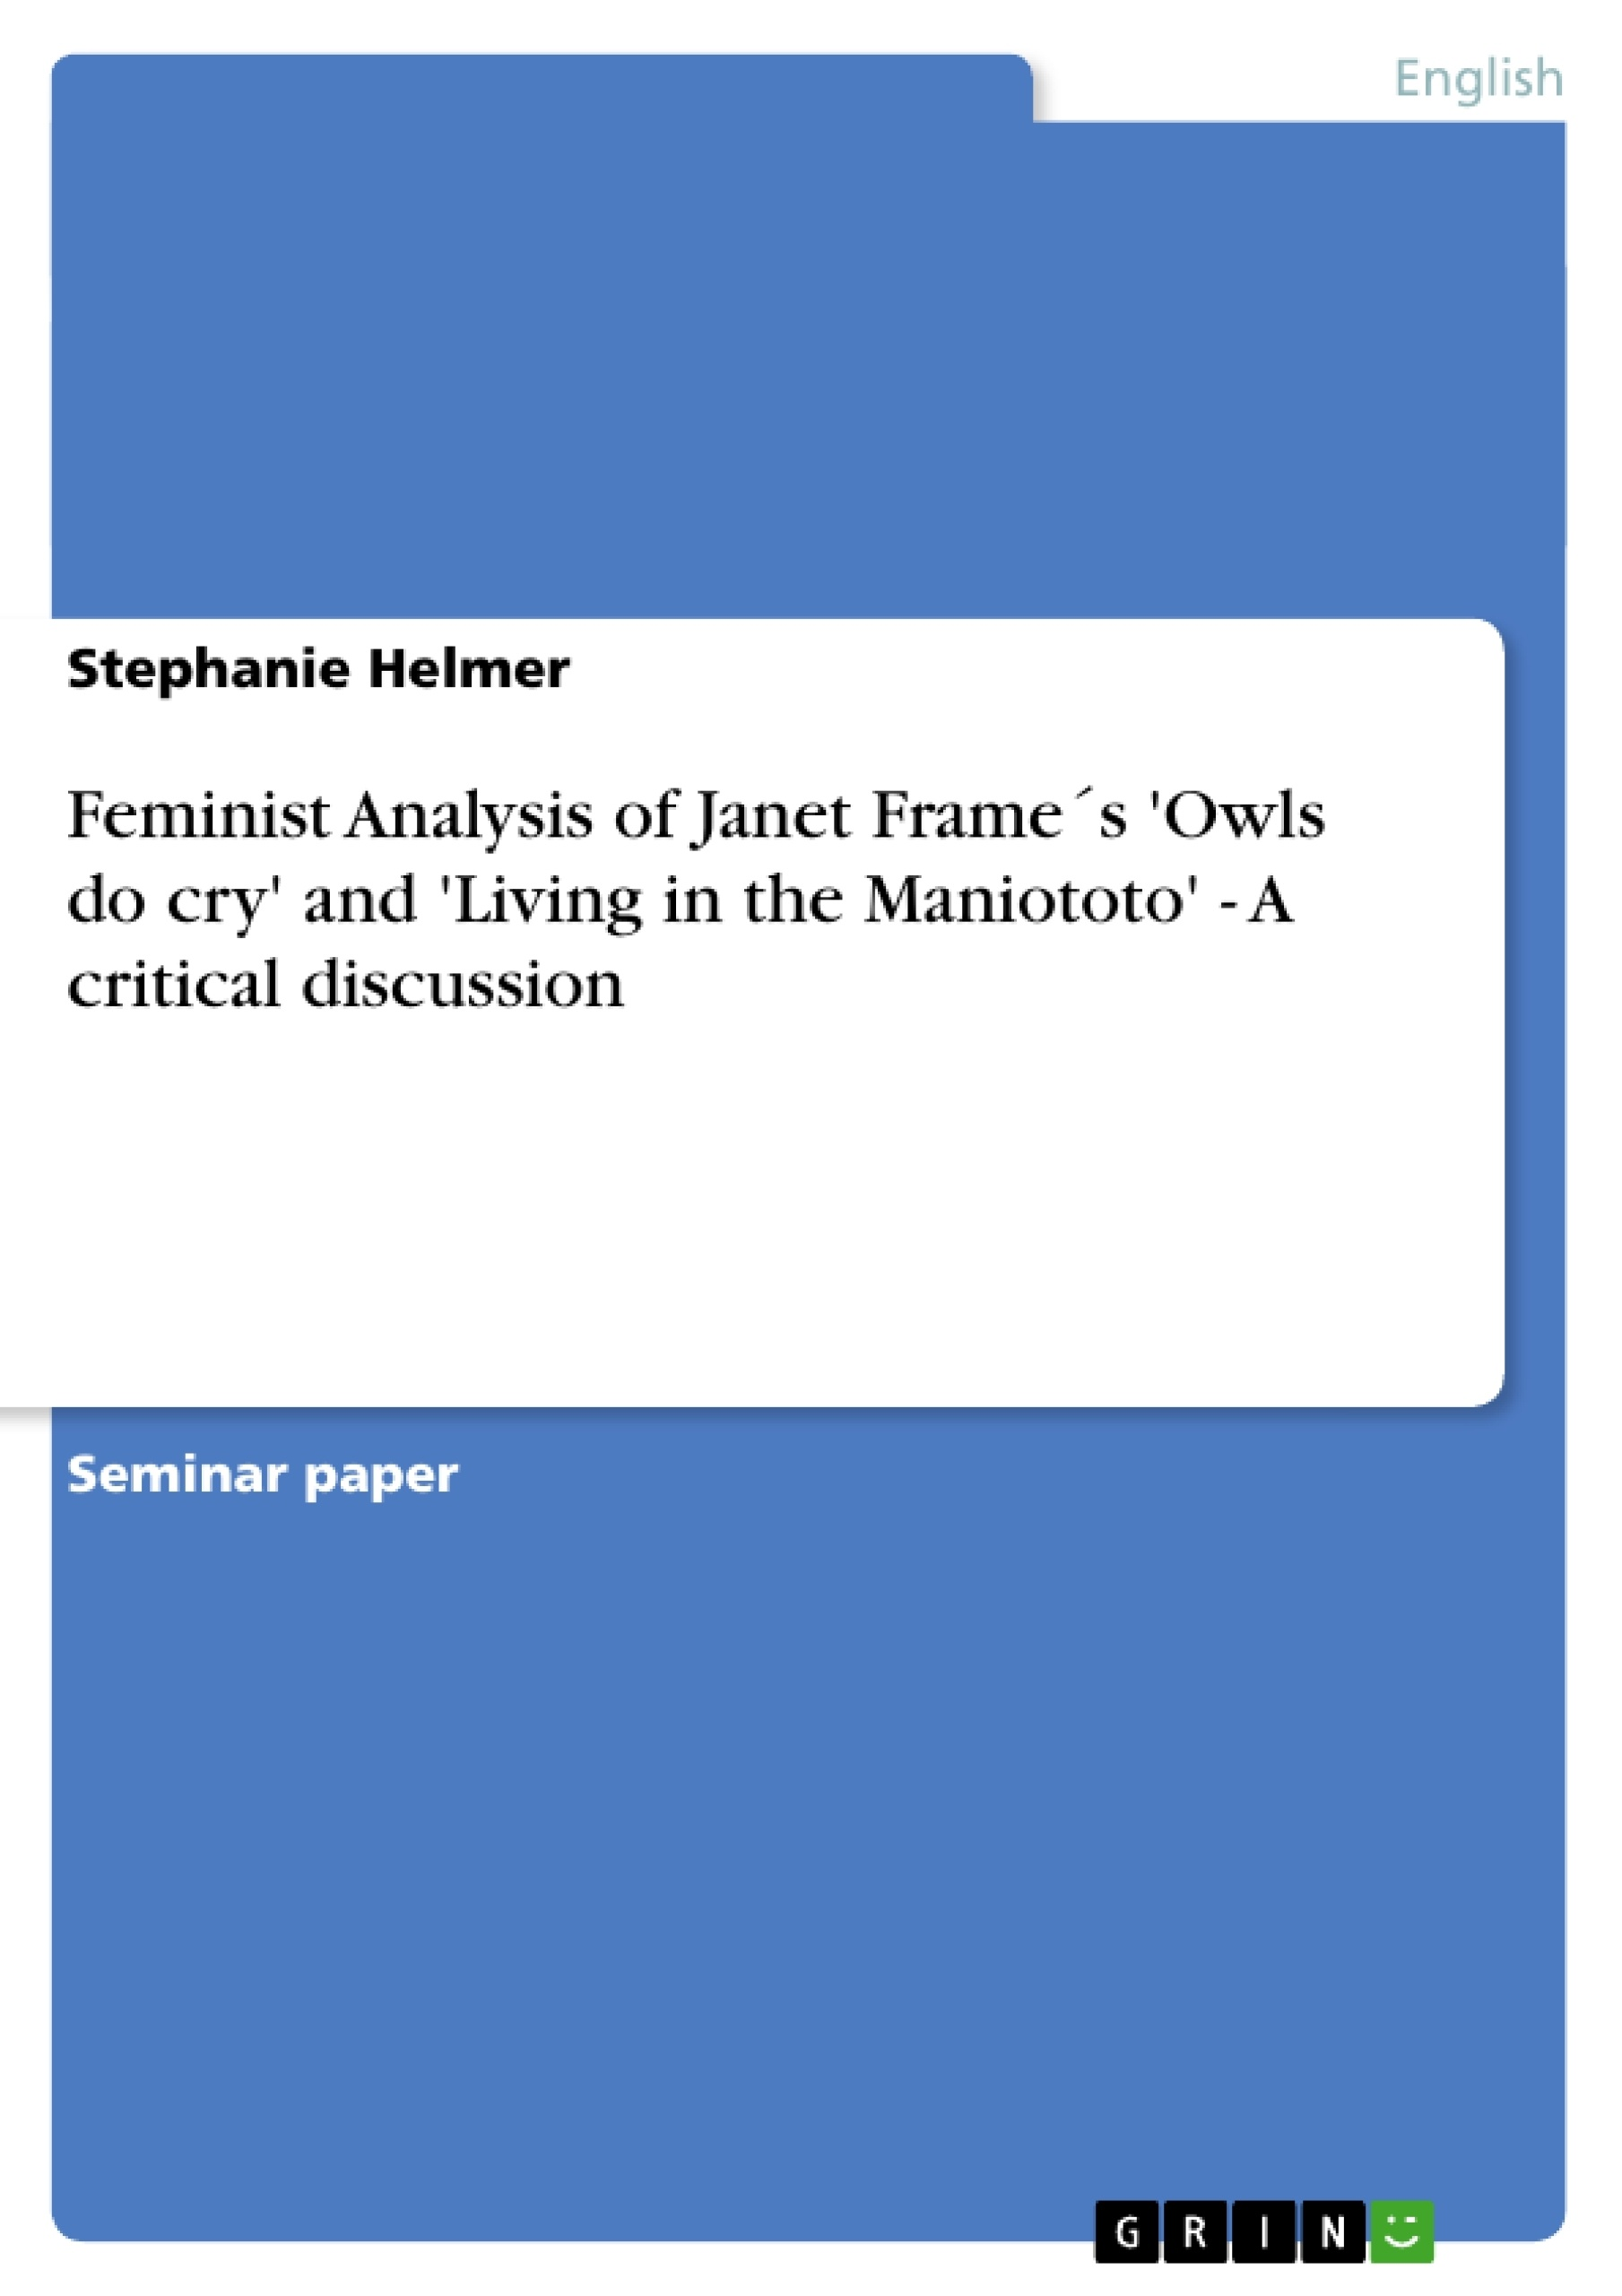 Title: Feminist Analysis of Janet Frame´s 'Owls do cry' and 'Living in the Maniototo' - A critical discussion